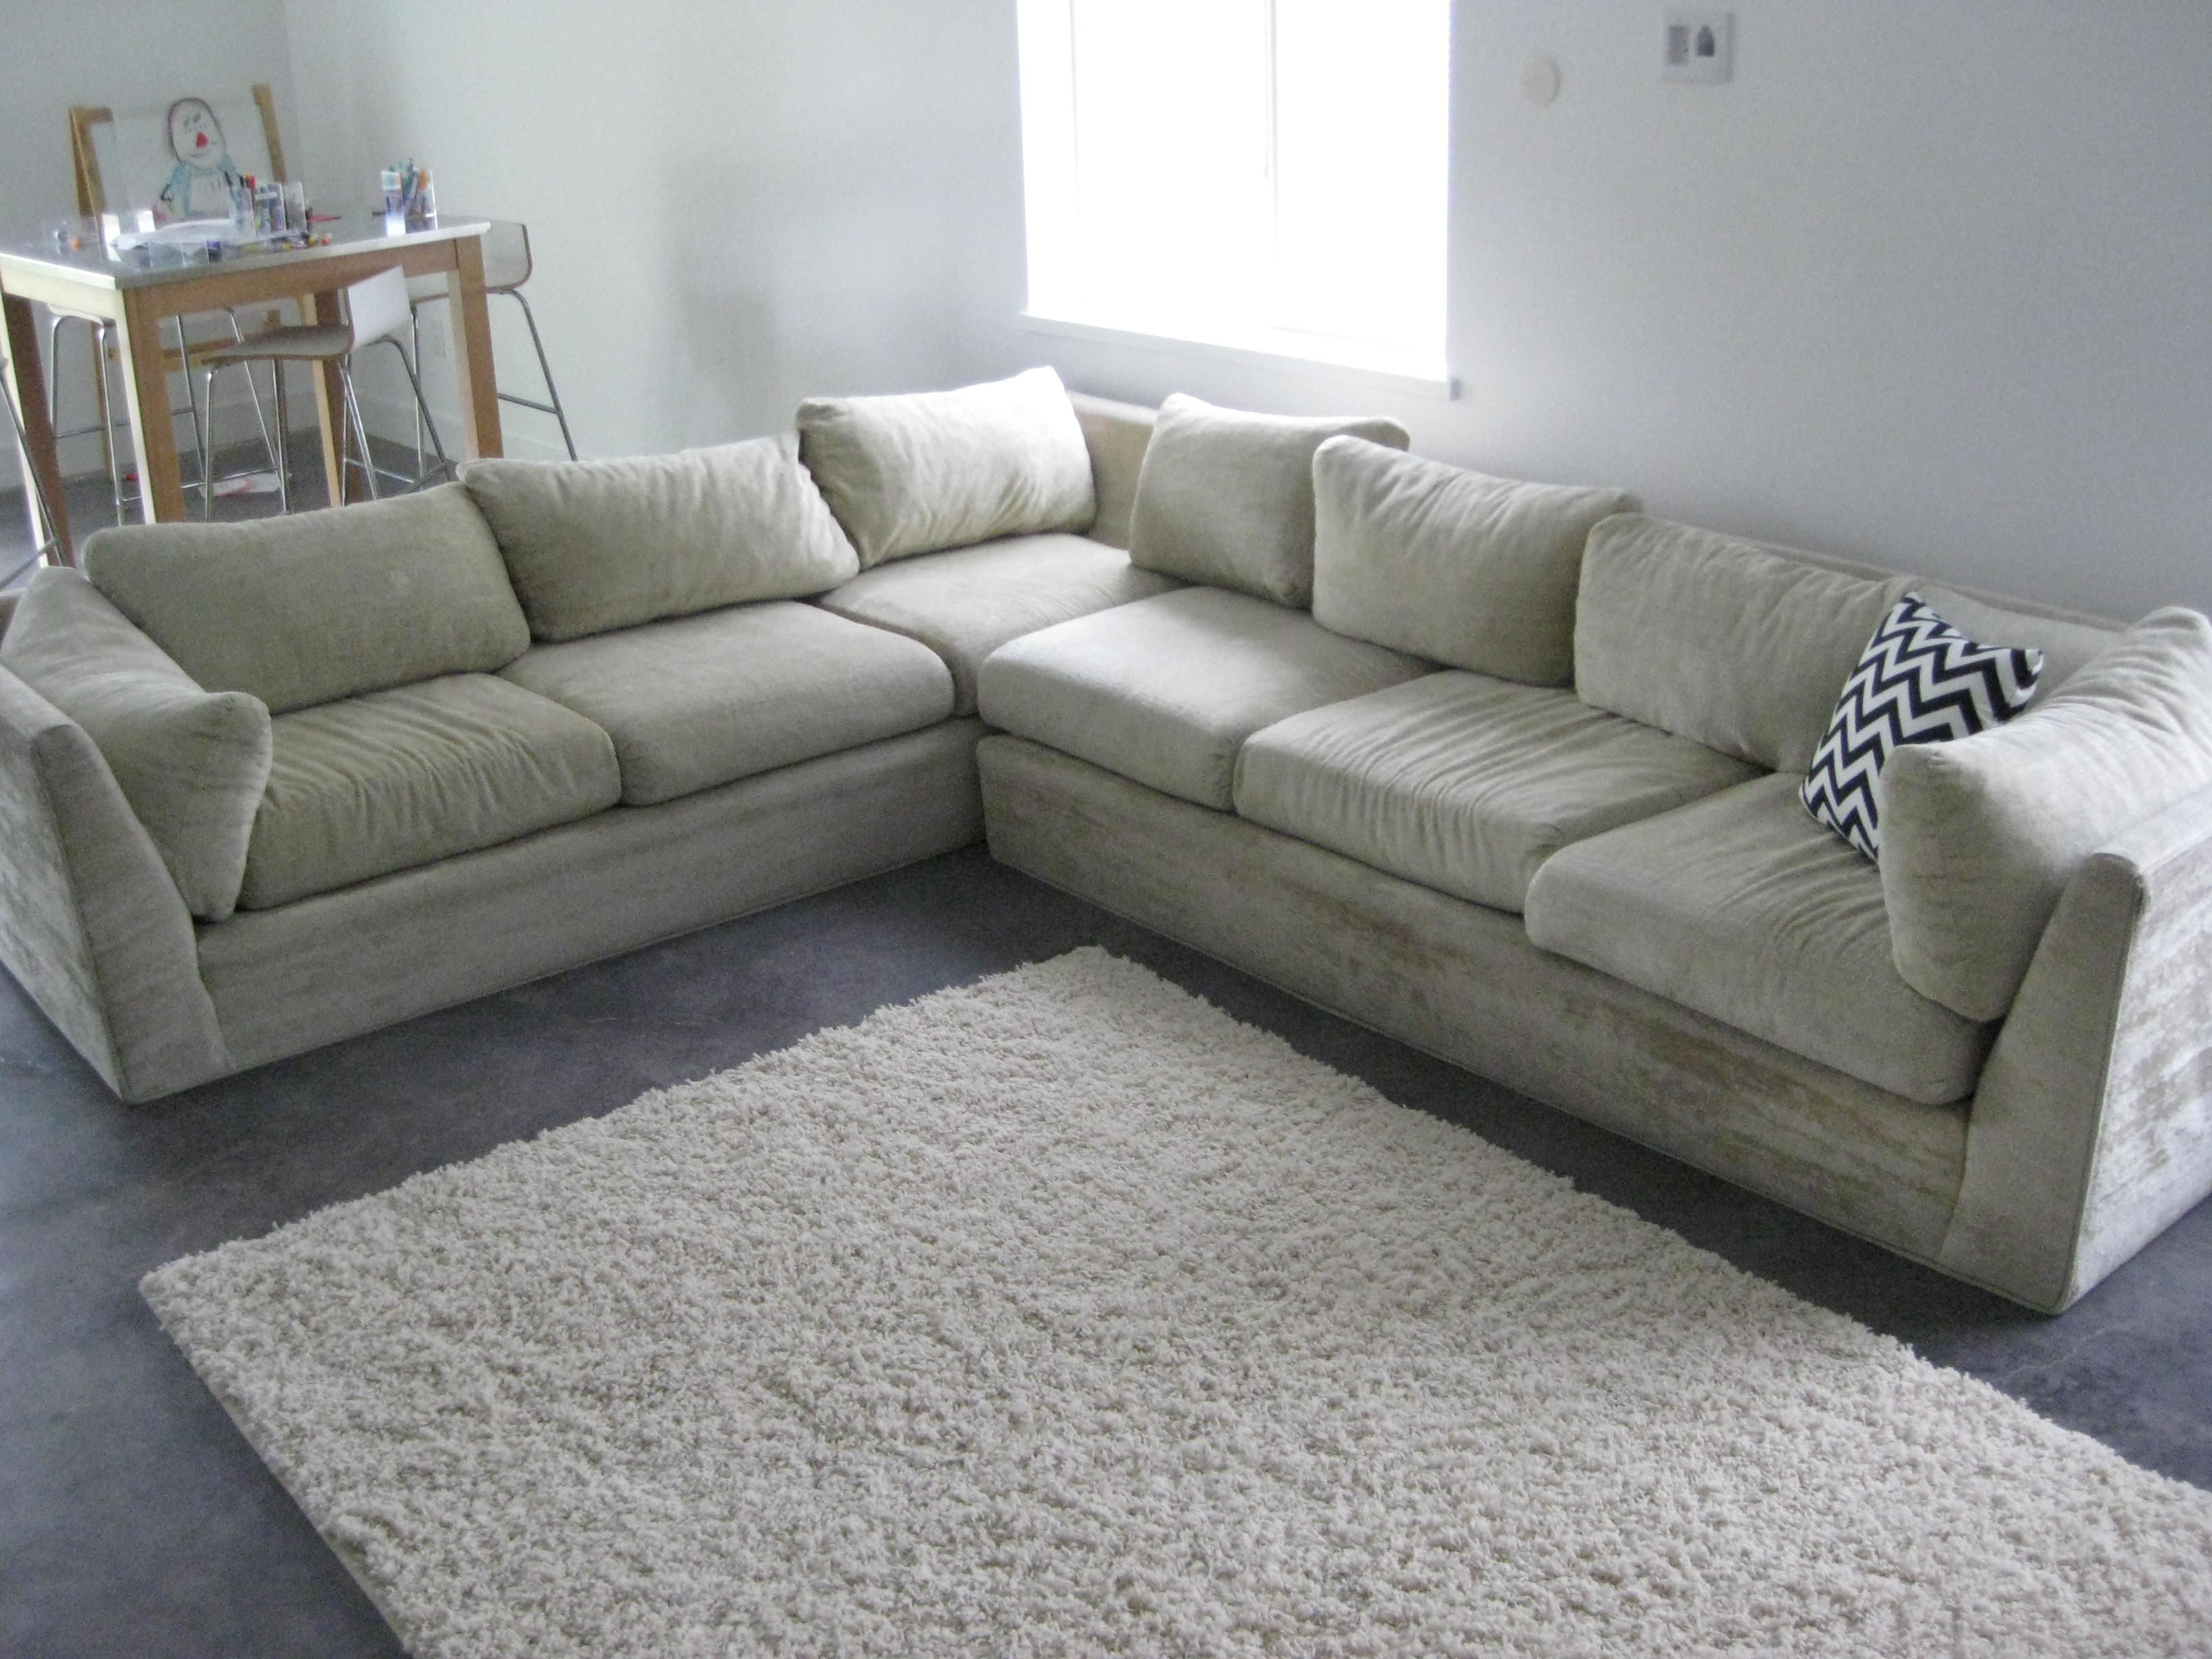 40 Year Old Sofa Sectional Reupholstered Beau Court Family